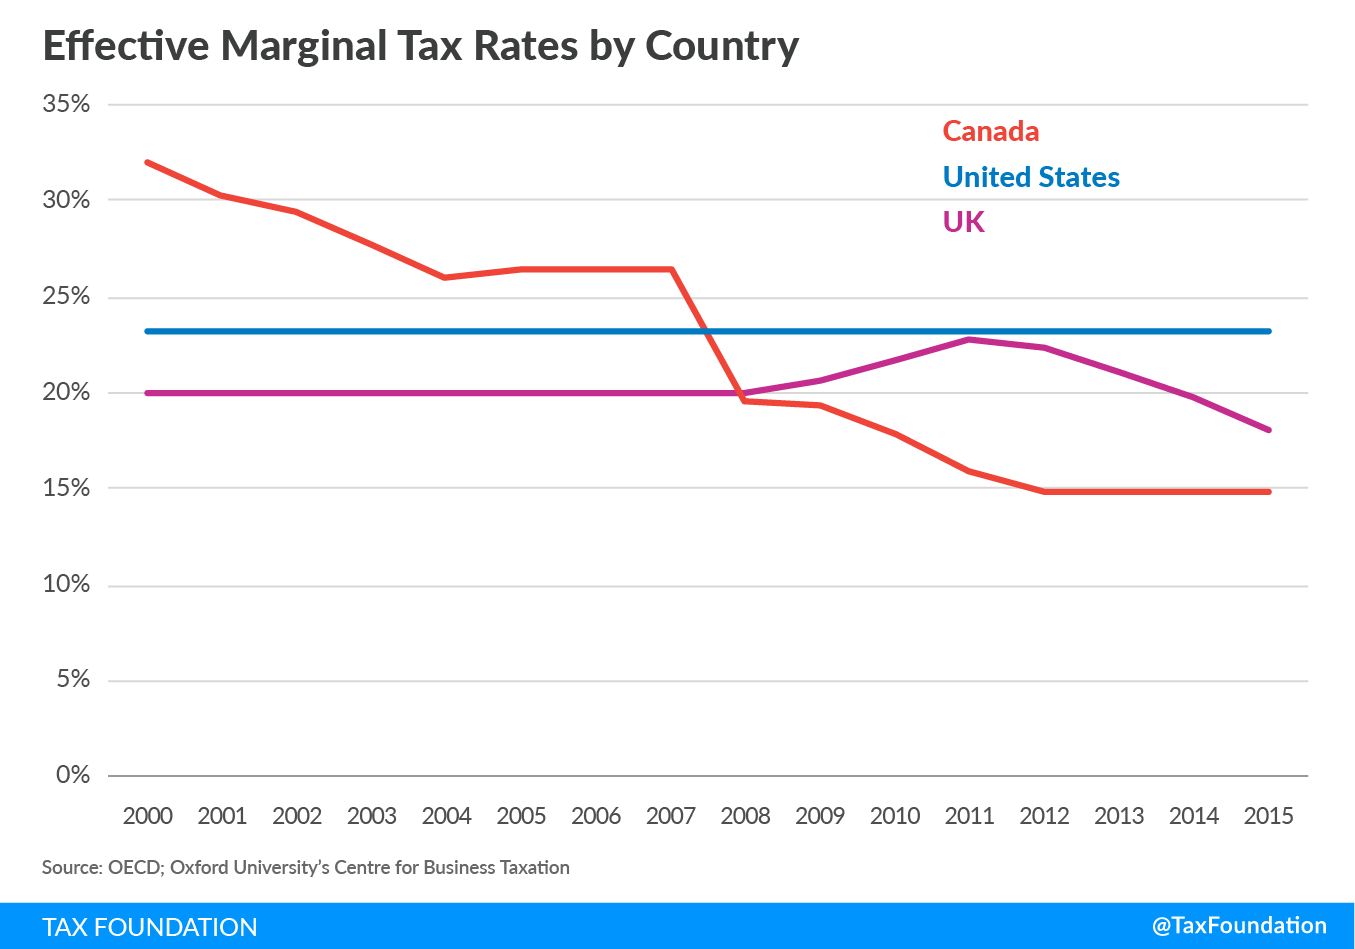 Economic growth and cutting the corporate tax rate tax foundation effective marginal tax rates united states canada uk nvjuhfo Image collections